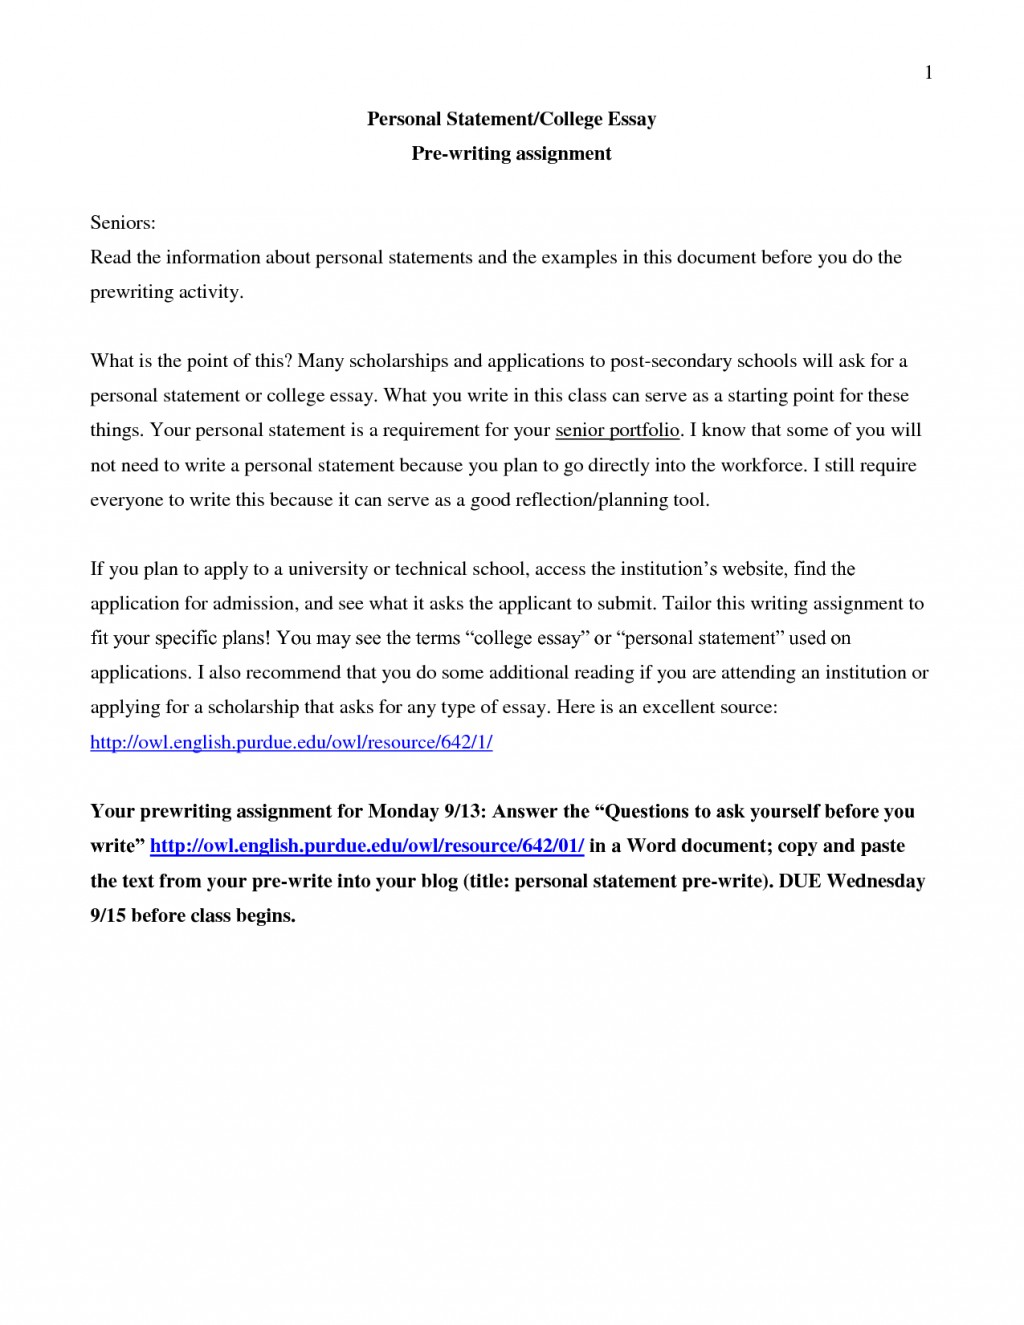 012 Examples Of Personal Essays For Scholarships T2u0npguki Essay Top Sample Statement Chevening Scholarship Pdf Large